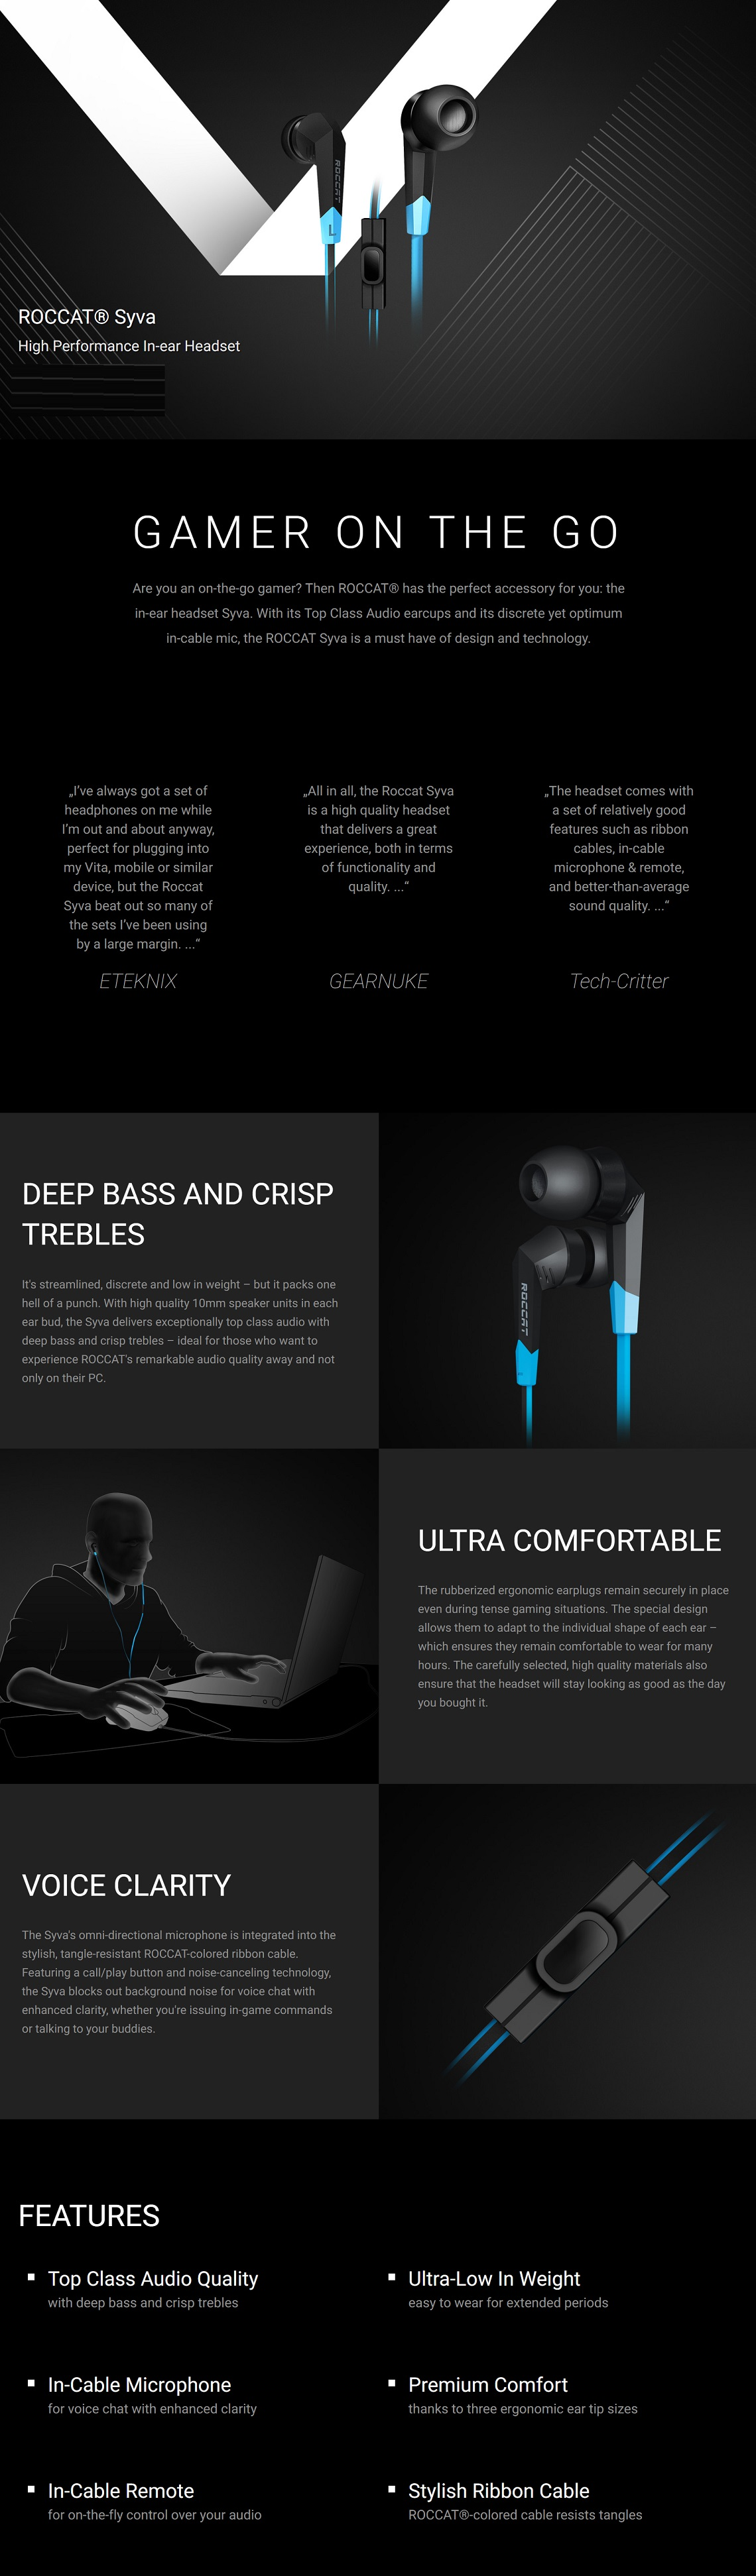 Roccat Syva High Performance In-Ear Headset Top Class Audio Quality Premium Comfort